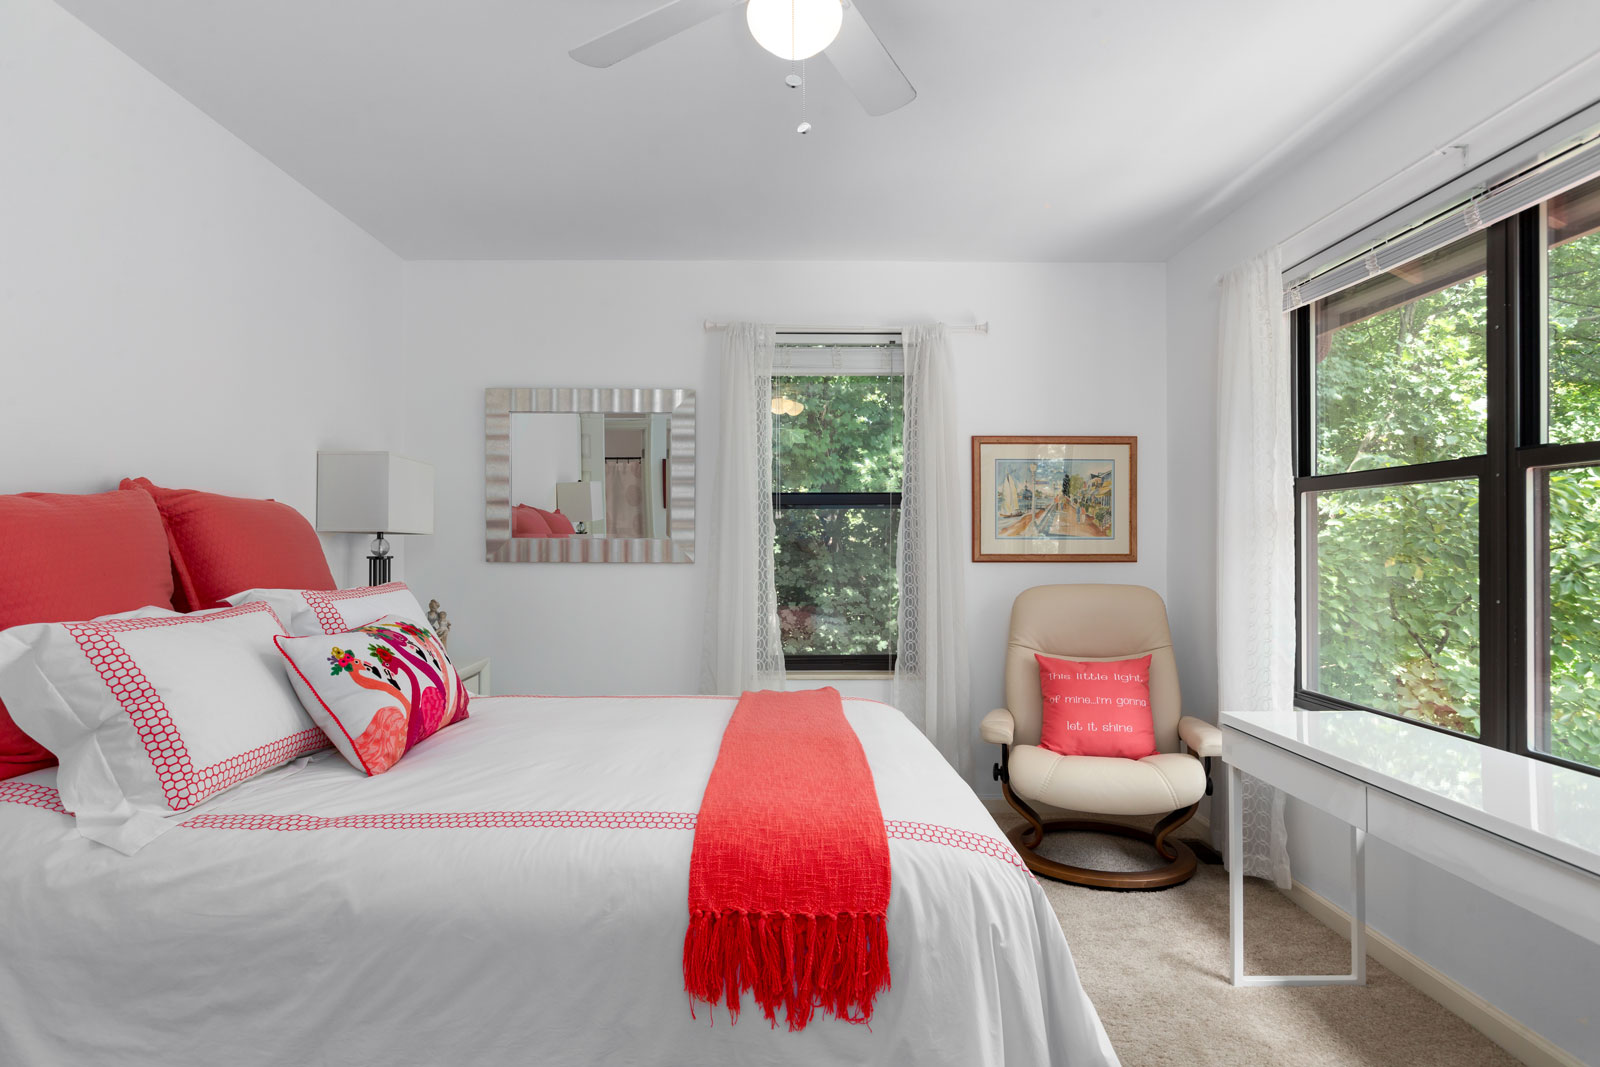 A bedroom with a bed and chair at Chesterfield Village Apartments